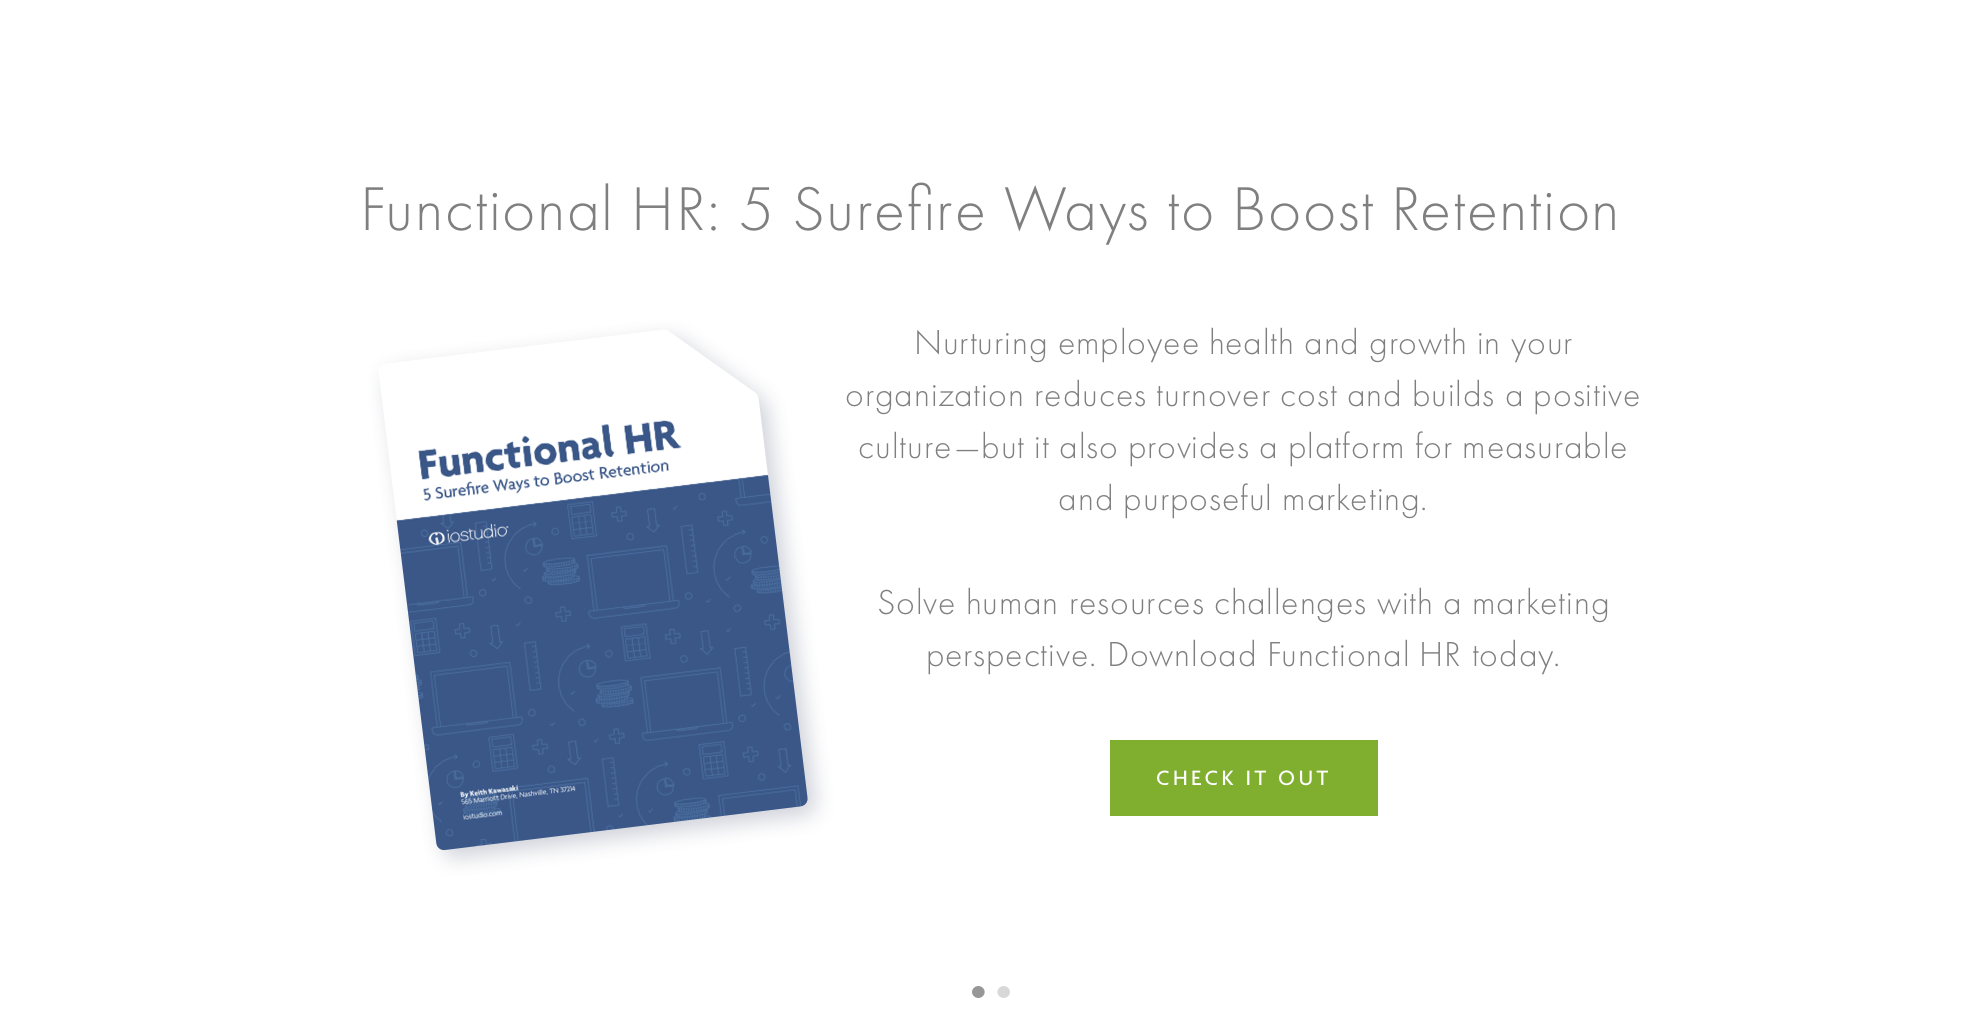 Functional HR: 5 Surefire Ways to Boost Retention